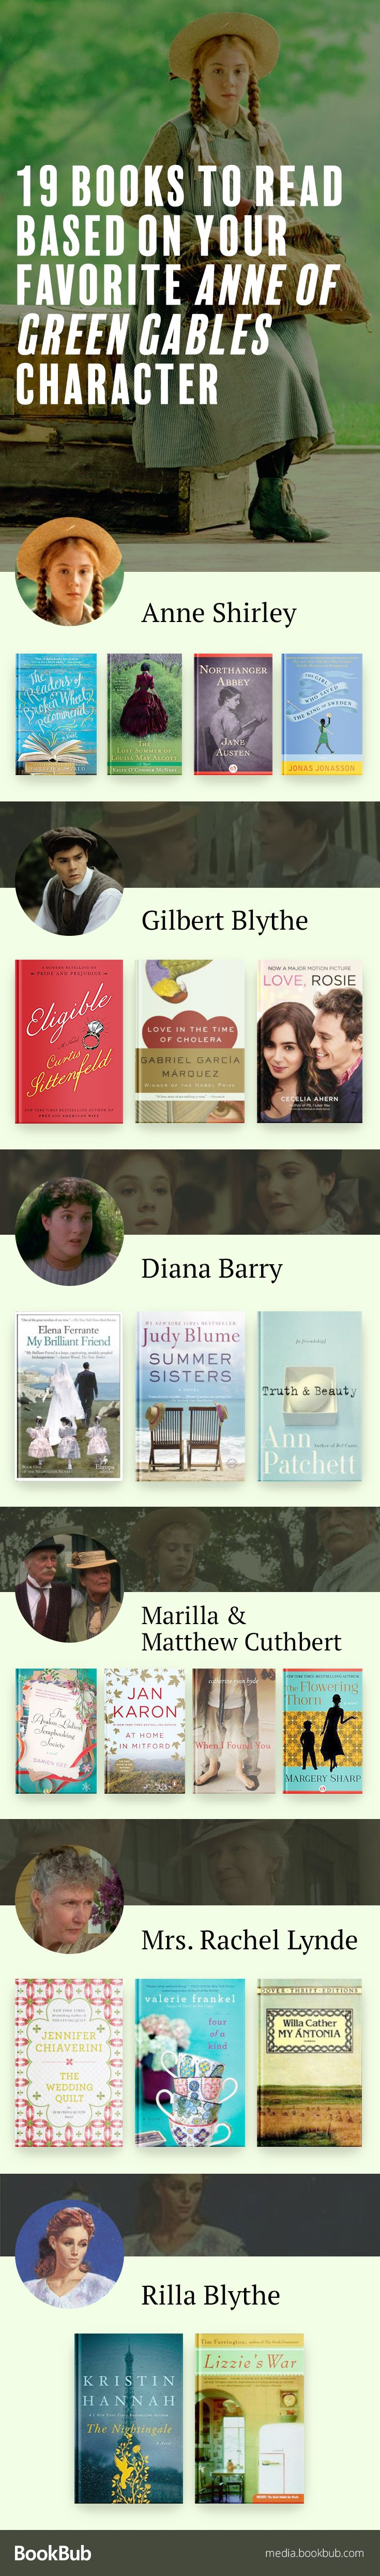 If you're looking for books like Anne of Green Gables, we've rounded up books to read based on your favorite character. Including classic books, contemporary fiction, and more.